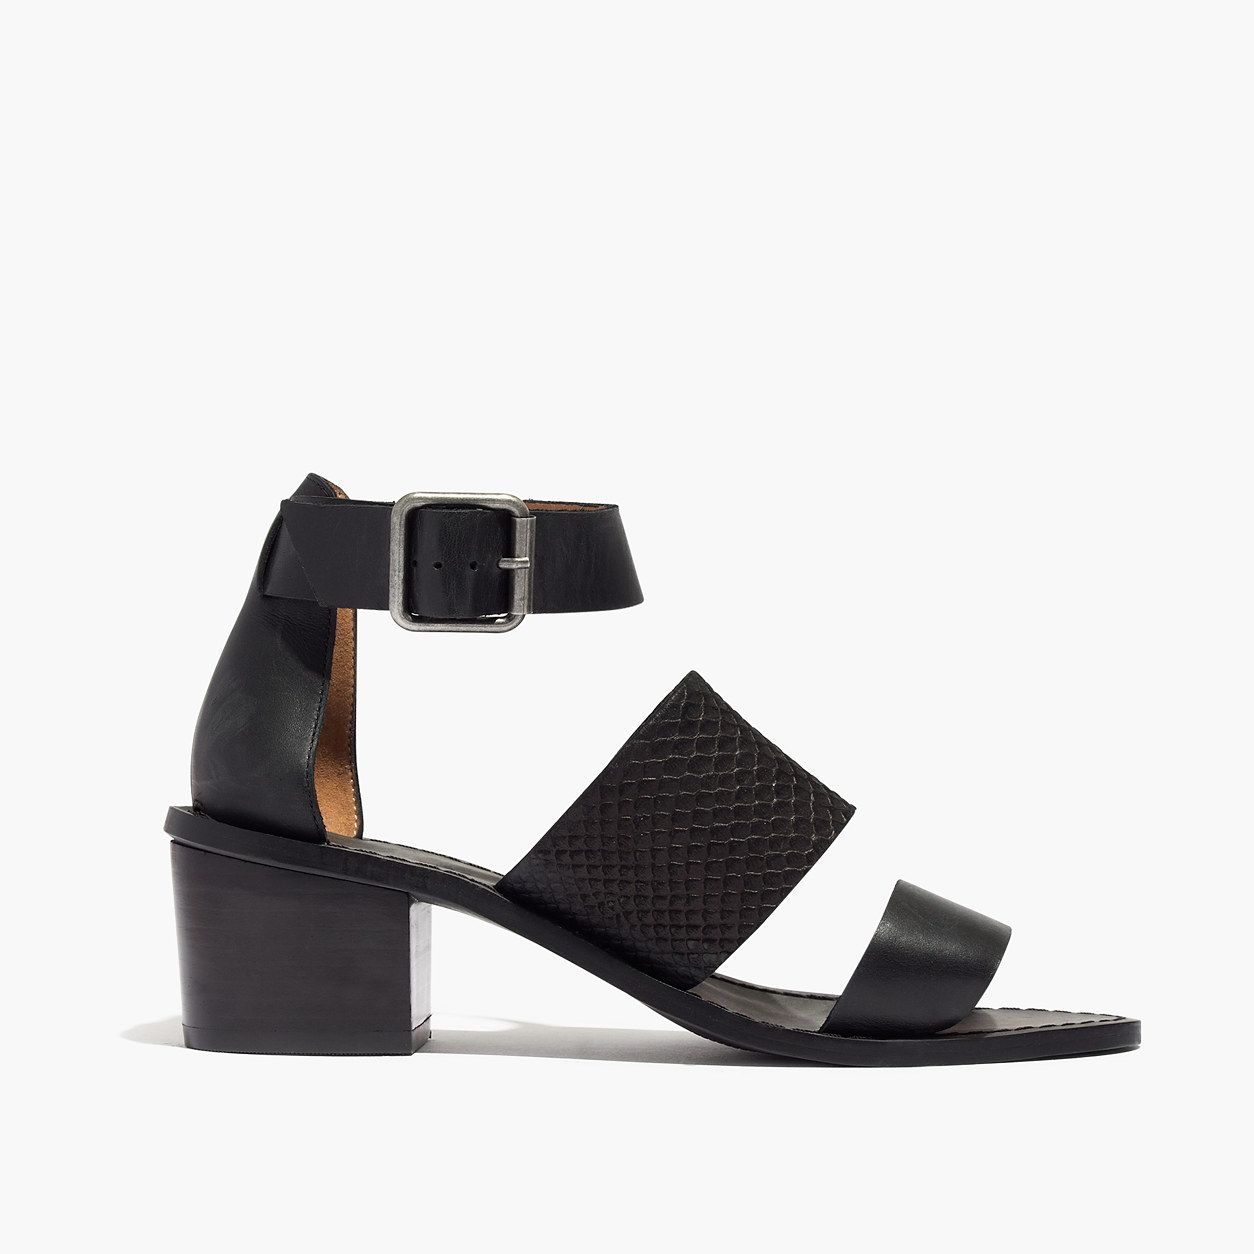 The Warren Sandal in Embossed Leather : Sandals | Madewell